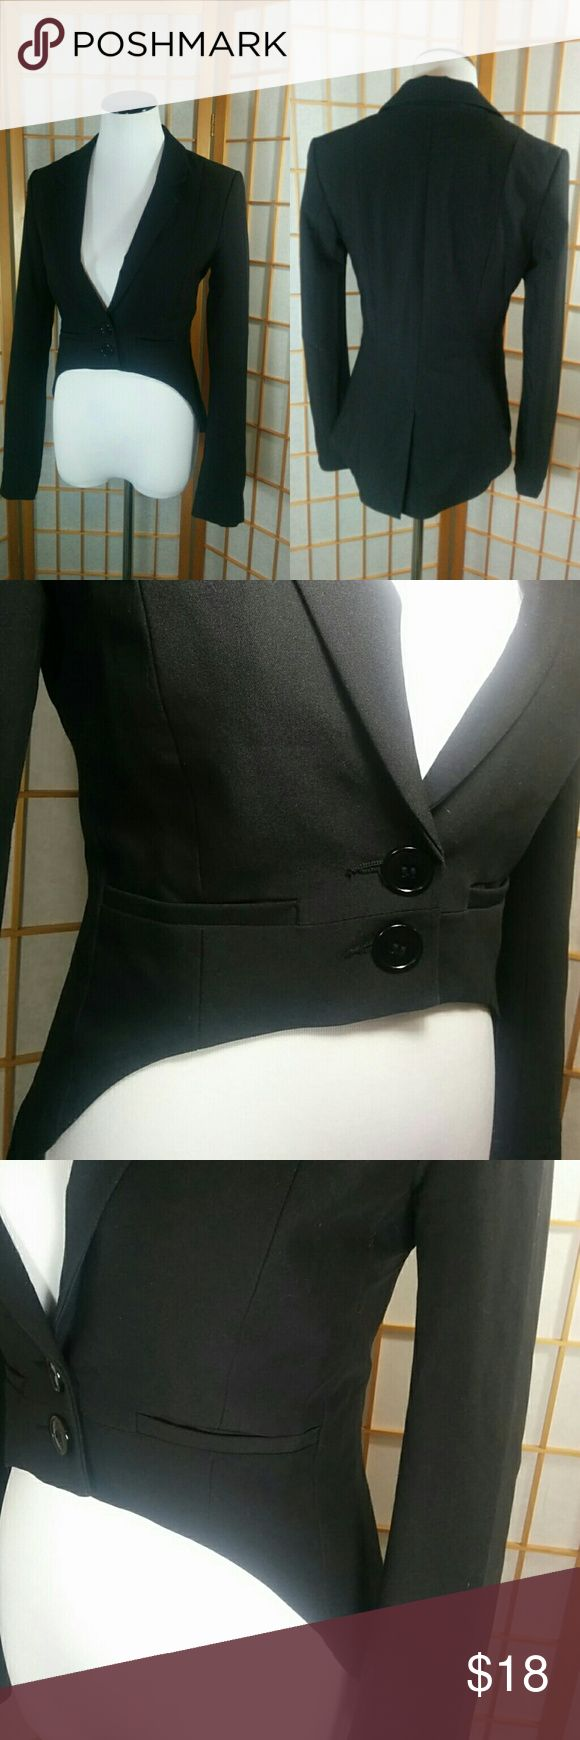 """H&M Divided women's tuxedo jacket Hi&M Divided, women's high low tuxedo jacket with leopard print lining. Tag says size 6 but this runs small and would likely better fit a size XS or 2. (I usually wear a 2/4 and it's too small for me). Measures 14"""" across the waist when laid flat and 16"""" from armpit to armpit. Divided Jackets & Coats Blazers"""